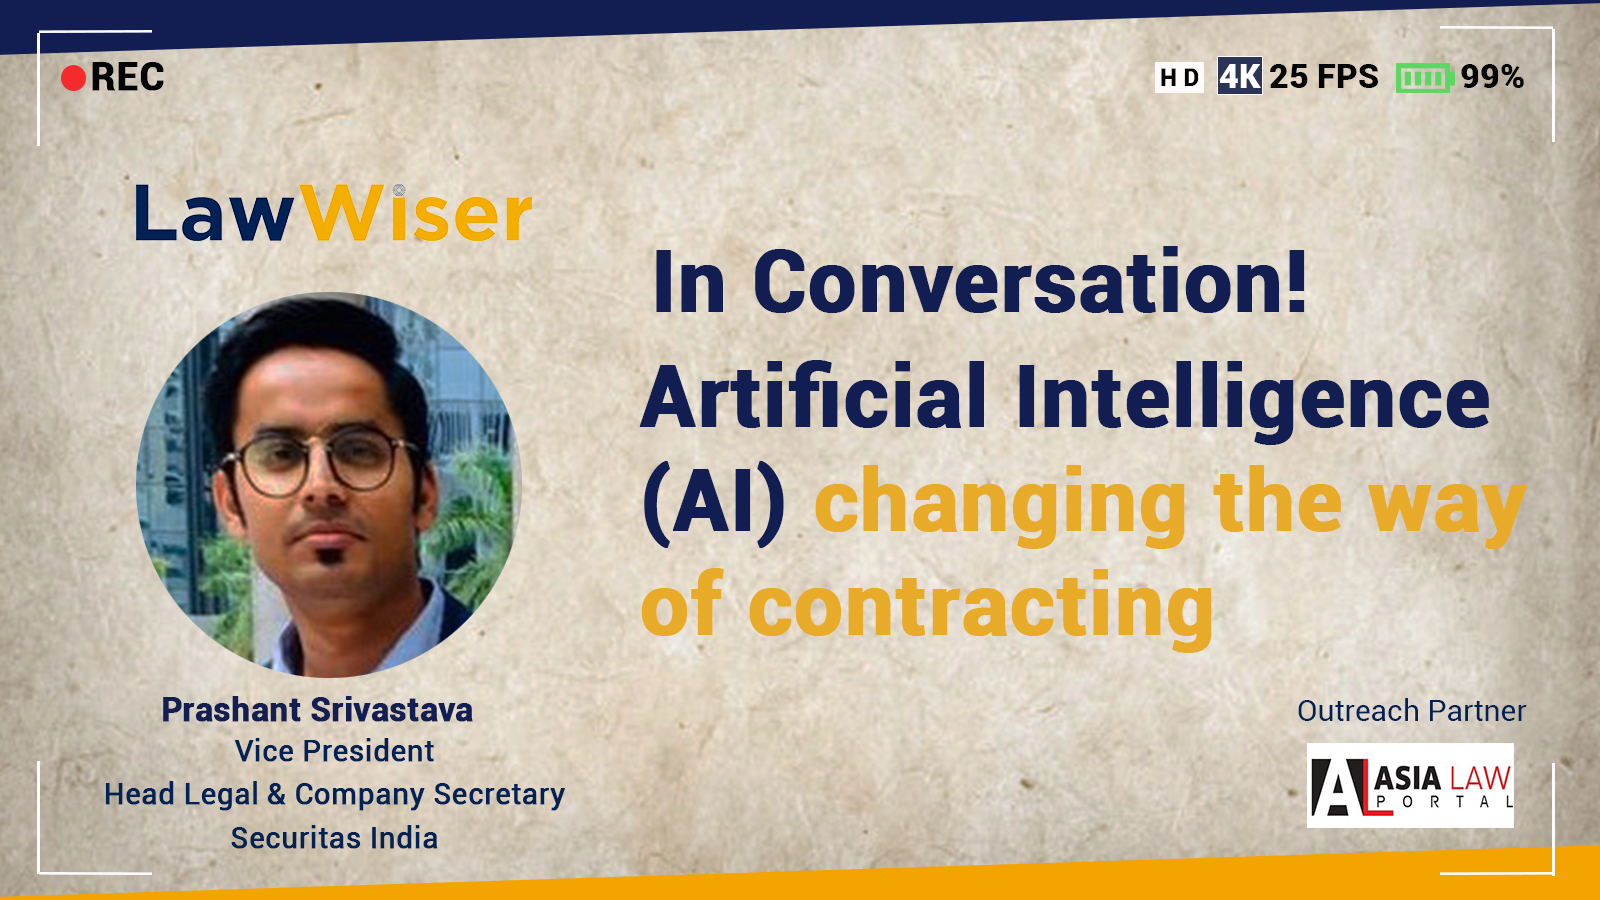 Artificial Intelligence Contracting